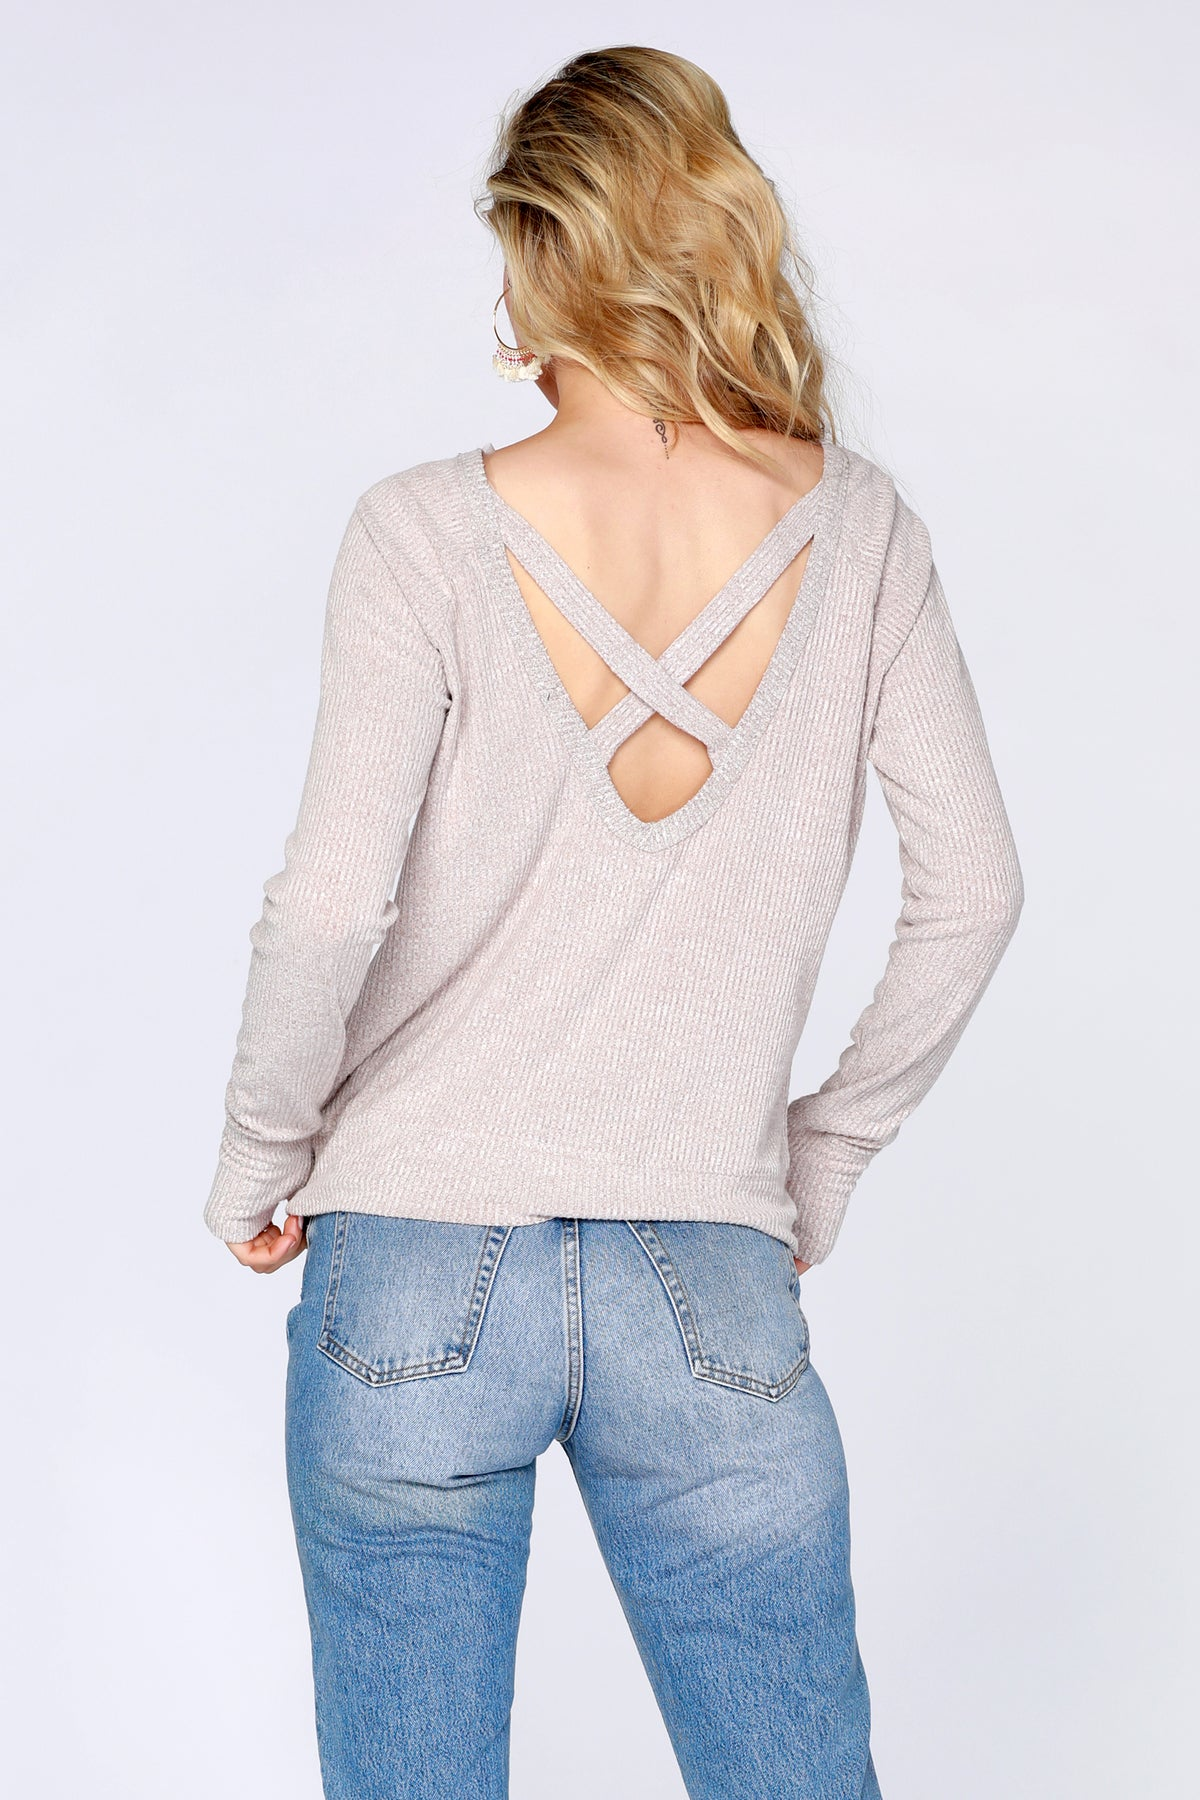 Rib Cross Back Top - bobi Los Angeles